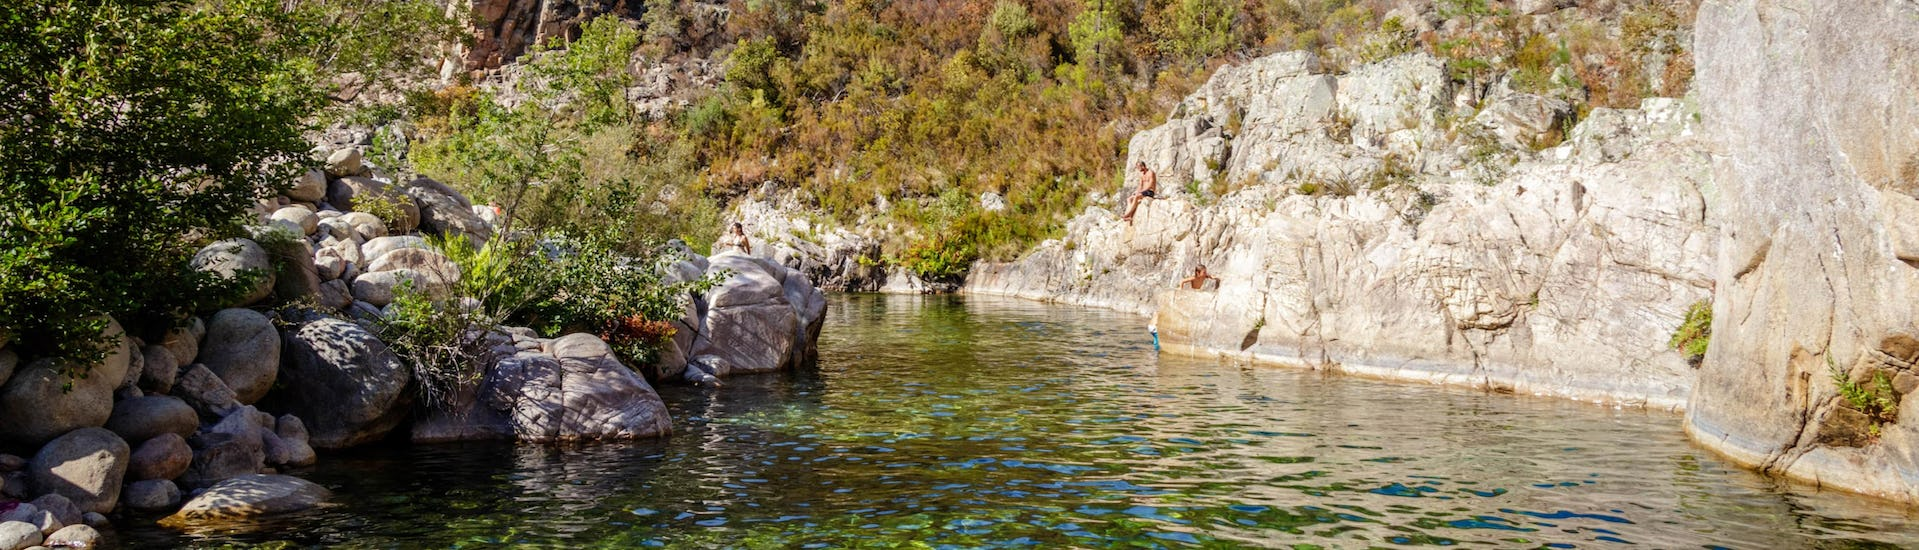 An image of the Solenzara River as seen when canyoning in Corsica.